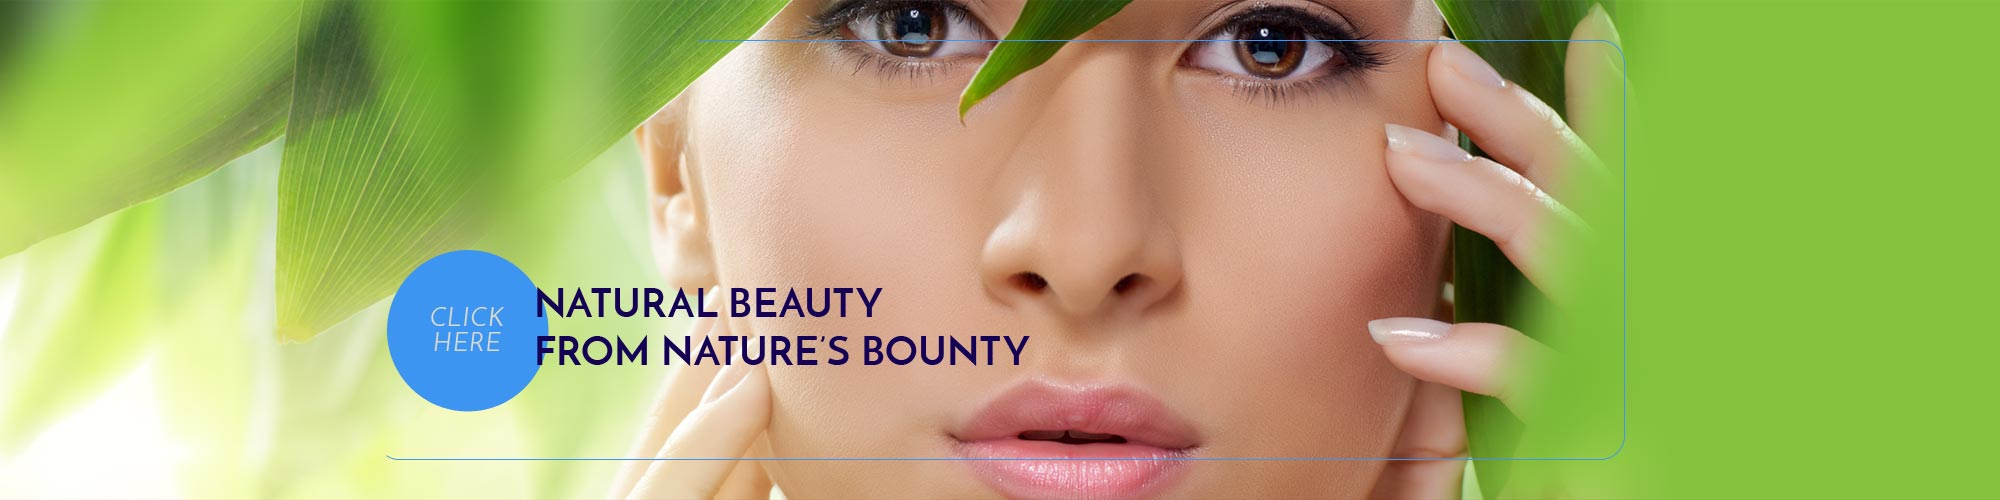 NATURAL BEAUTY FROM NATURES BOUNTY